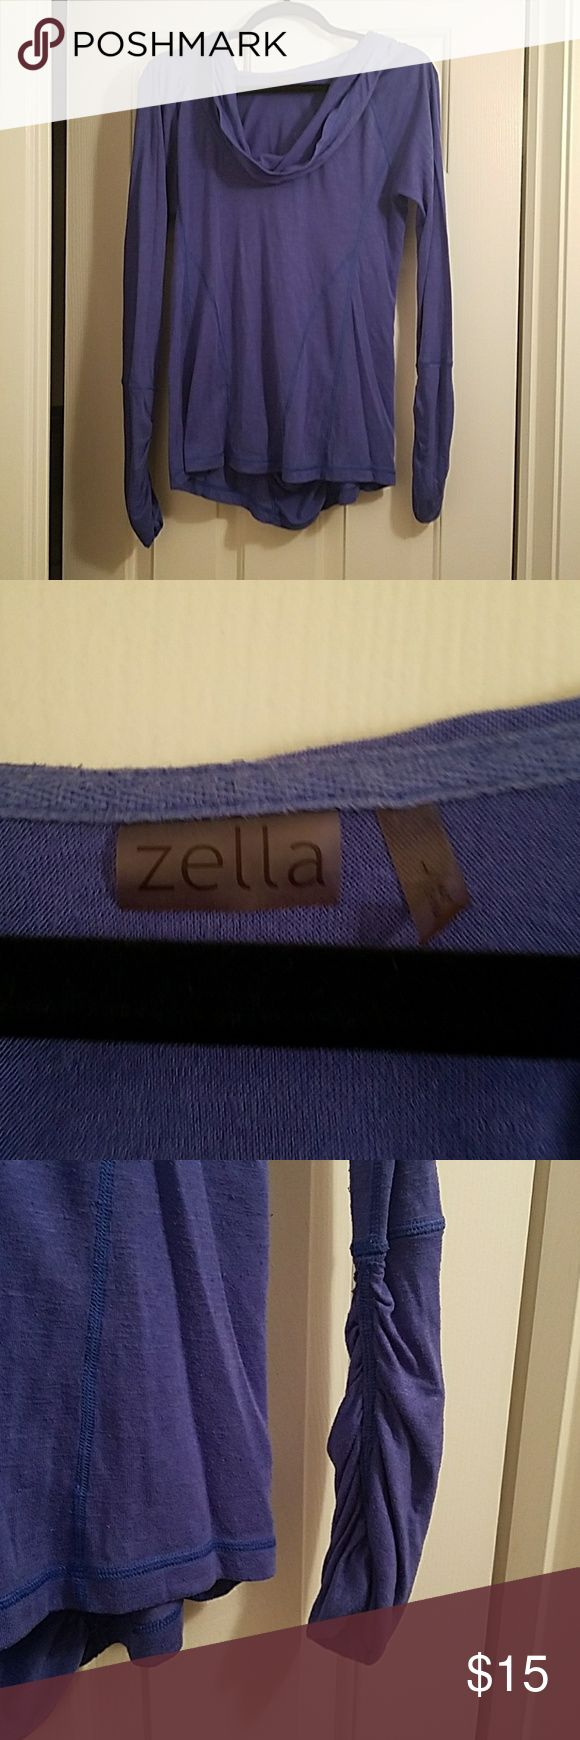 Zella Pull Over Sweater Long Sleeve, thumb holes at end of